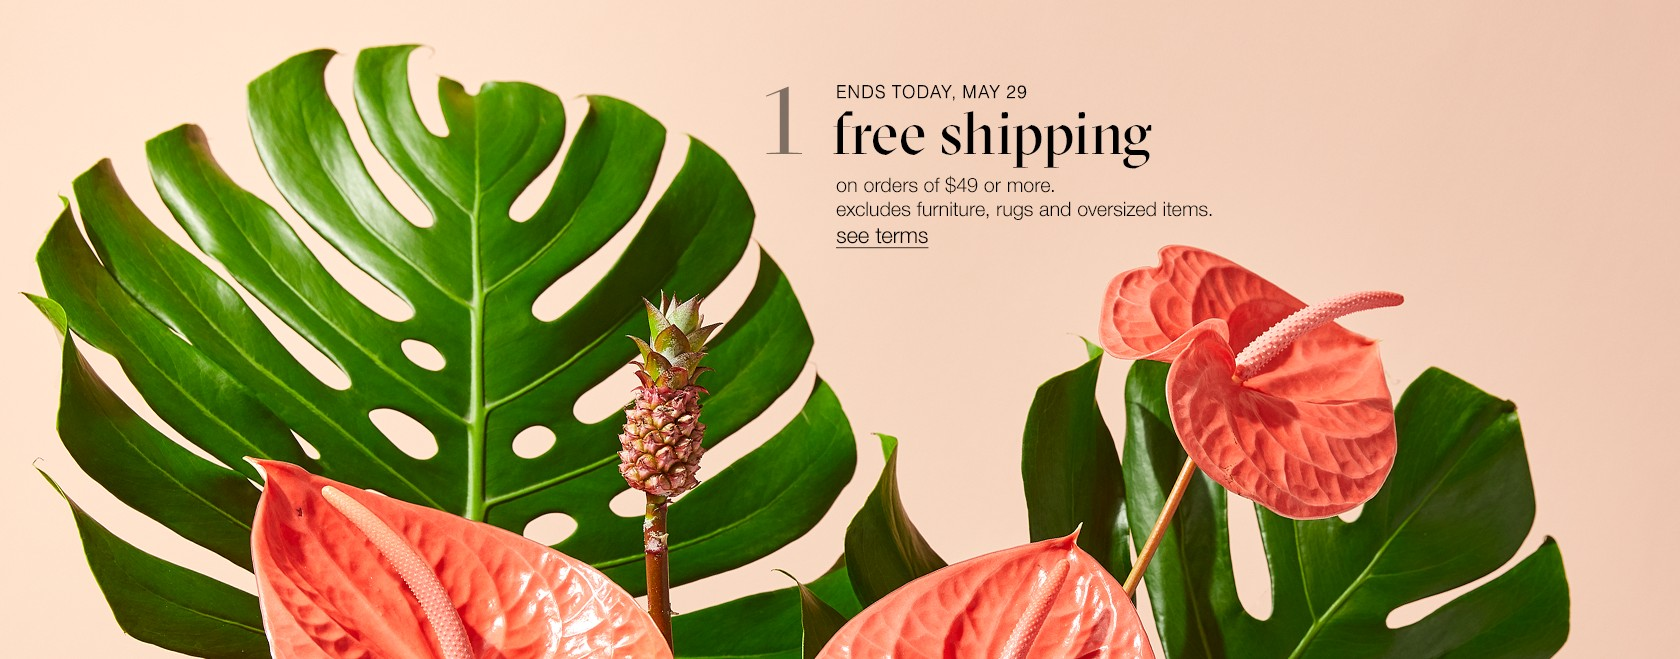 free shipping on select orders $49 or more